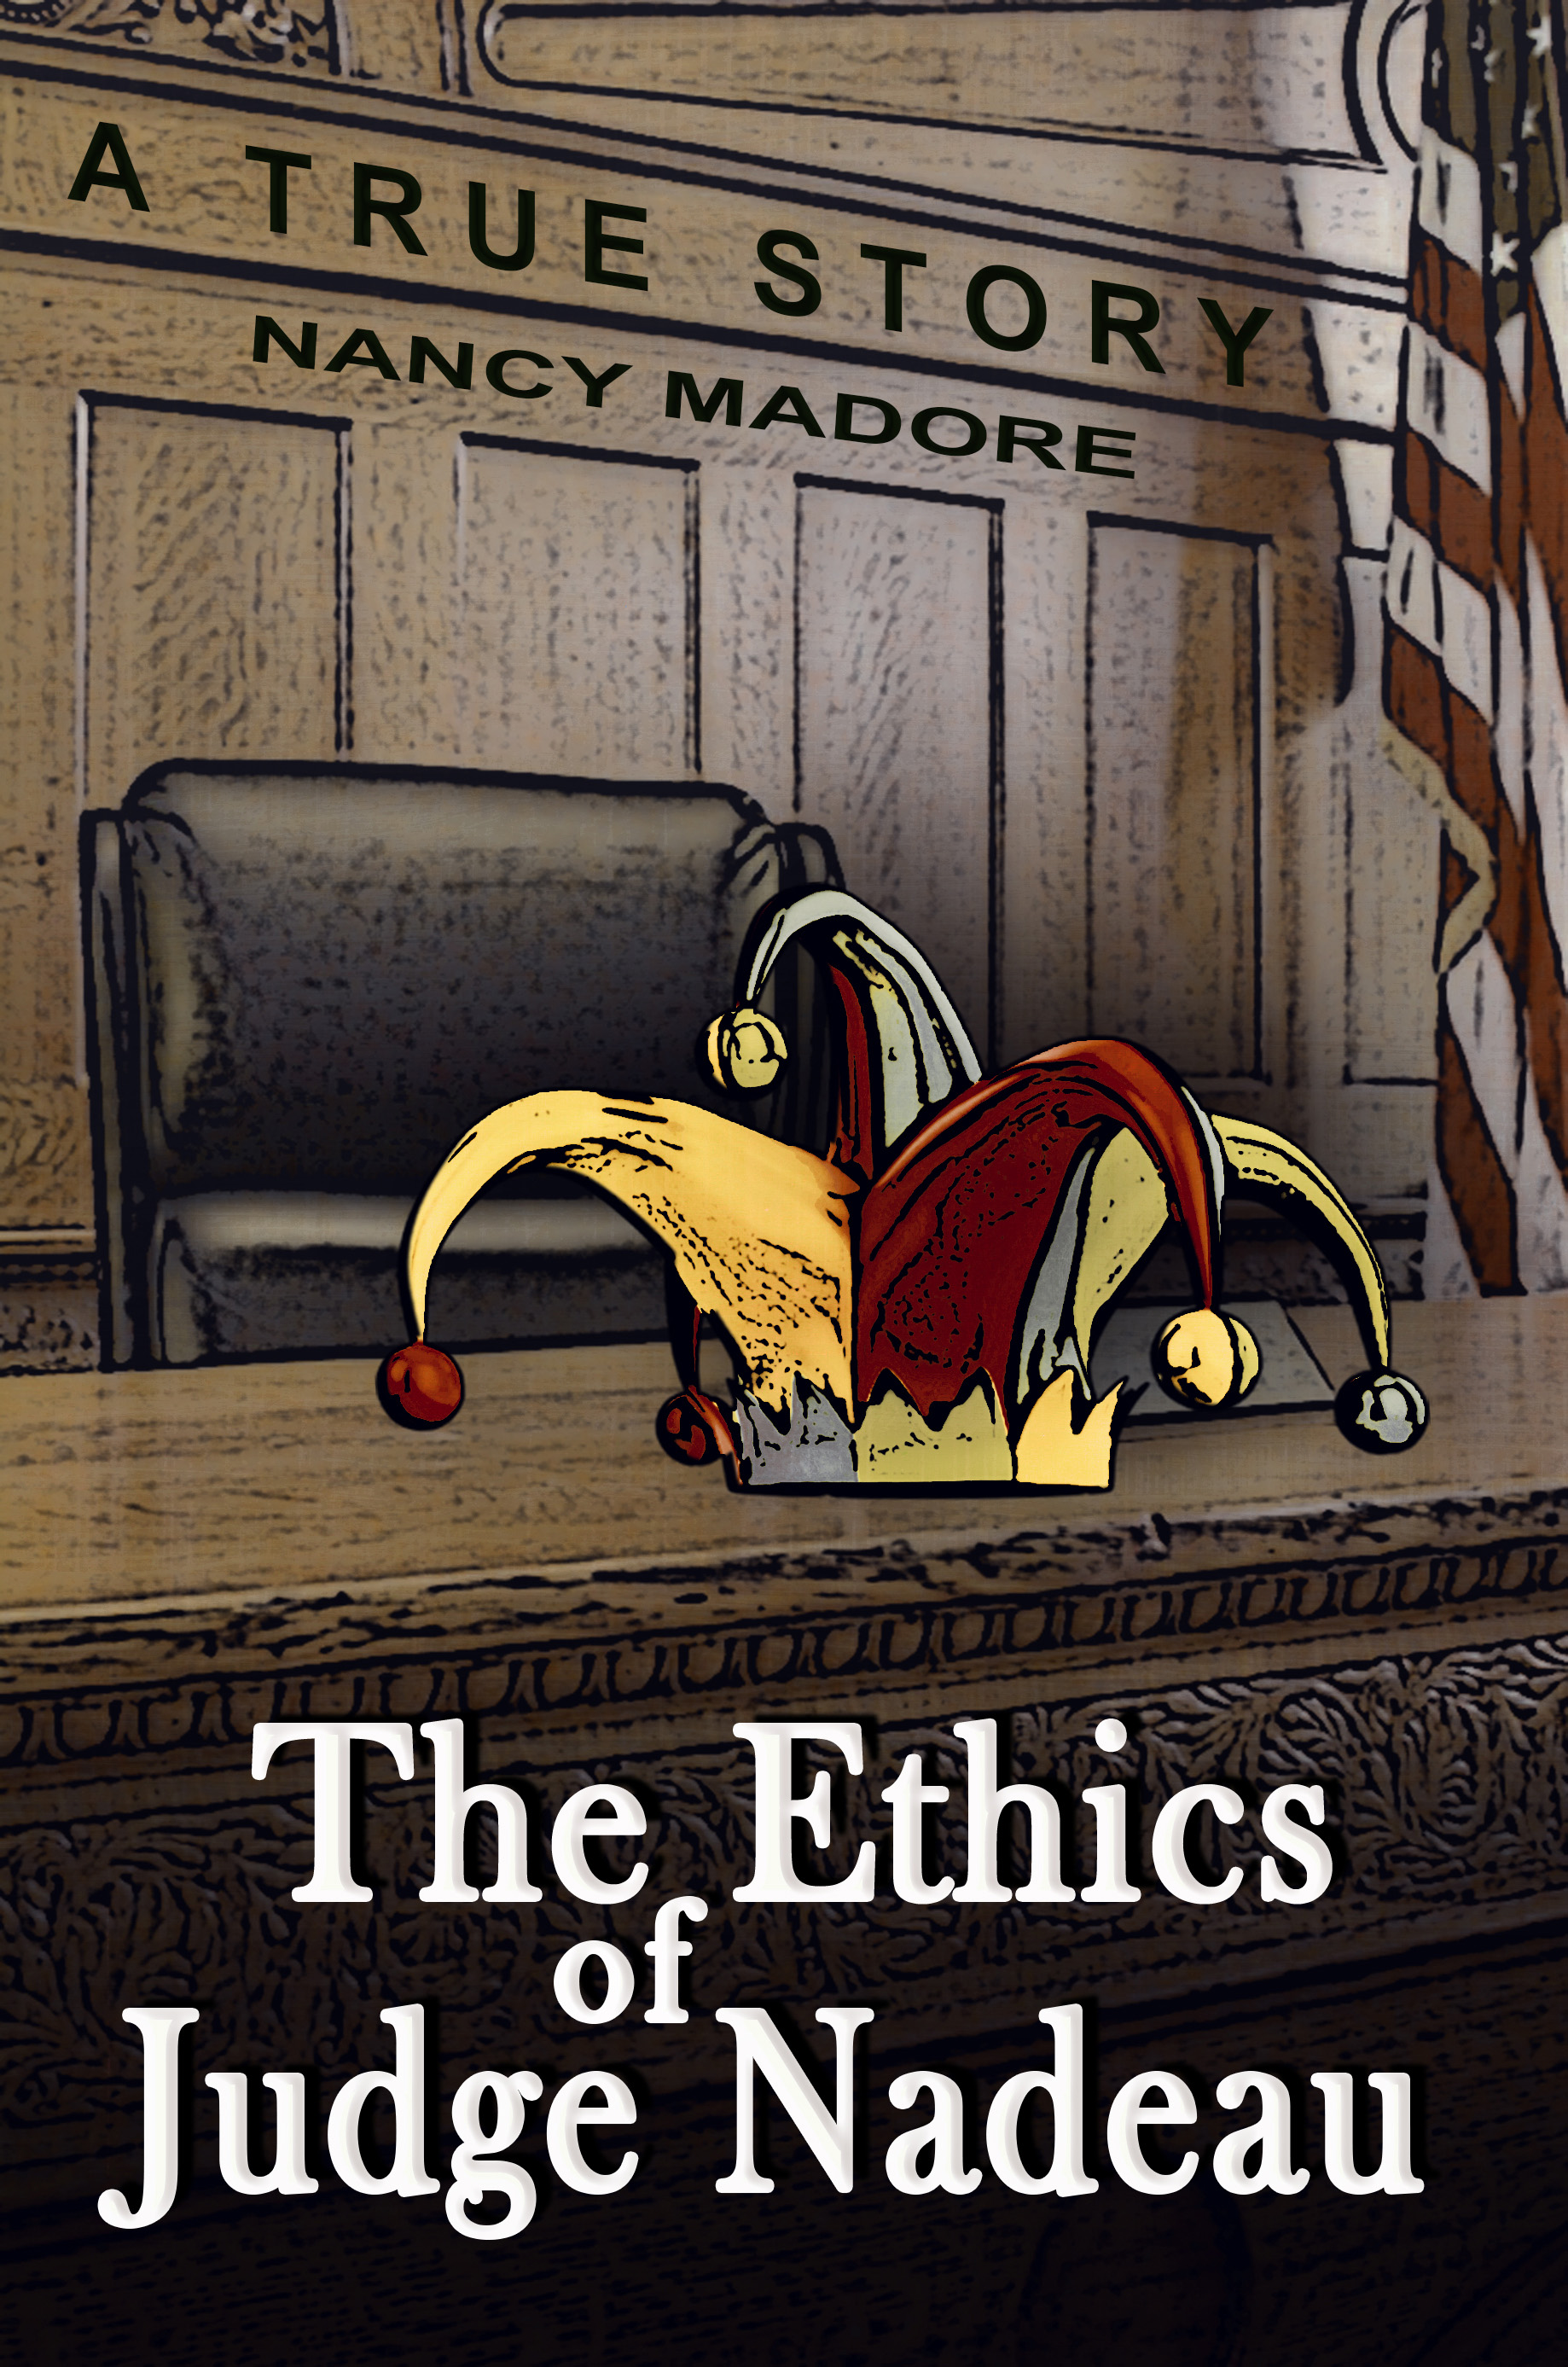 The Ethics of Judge Nadeau